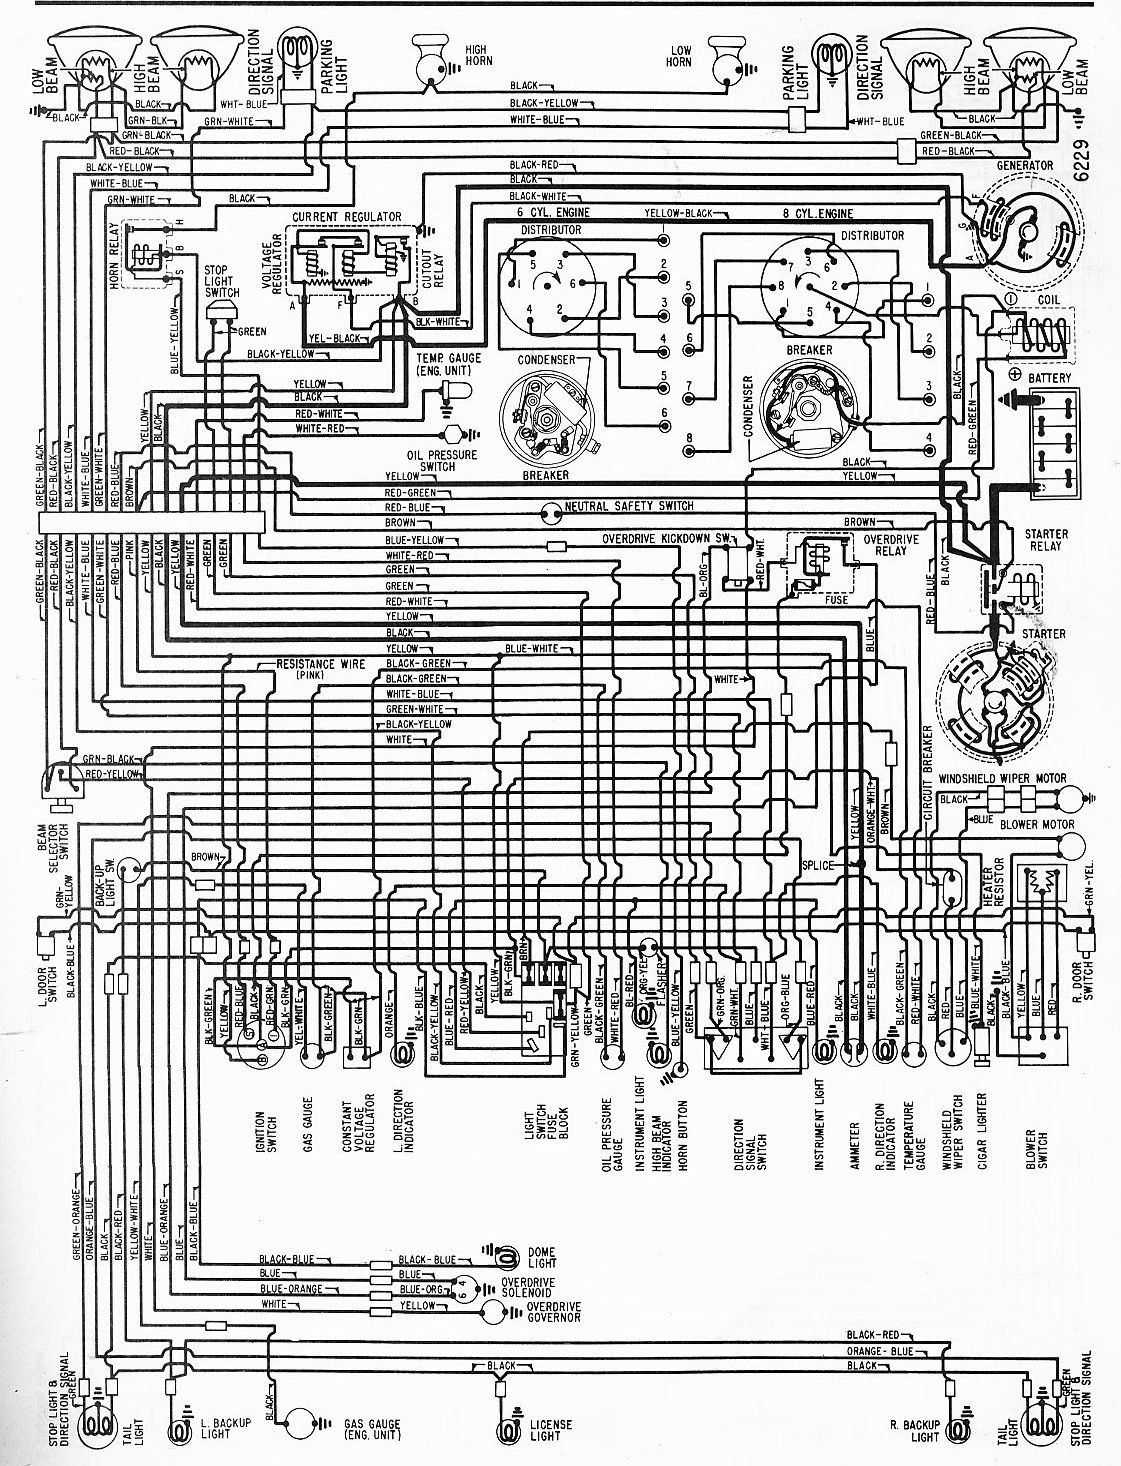 1970 Chevy C10 Fuse Box Diagram Wiring Diagram Portal • with regard to 1972 Chevy  Truck Wiring Diagram | Electrica, CartografíaPinterest